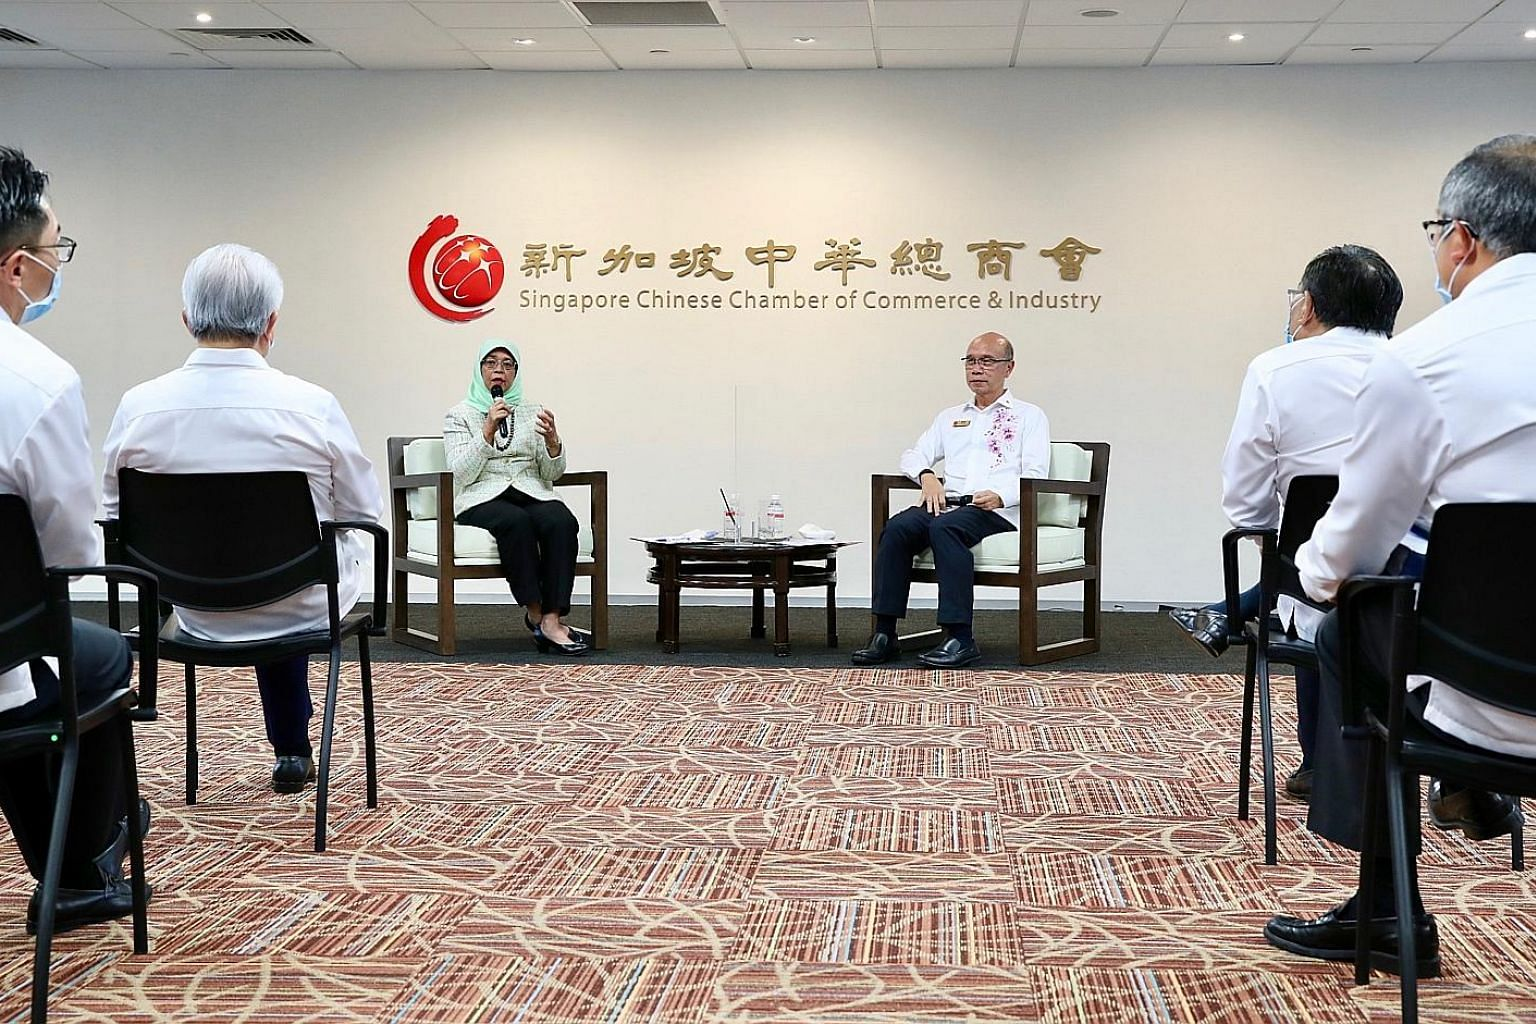 President Halimah Yacob speaking at a dialogue with members of the Singapore Chinese Chamber of Commerce and Industry yesterday. She later said that based on discussions and feedback during the session, companies are exploring new opportunities, such